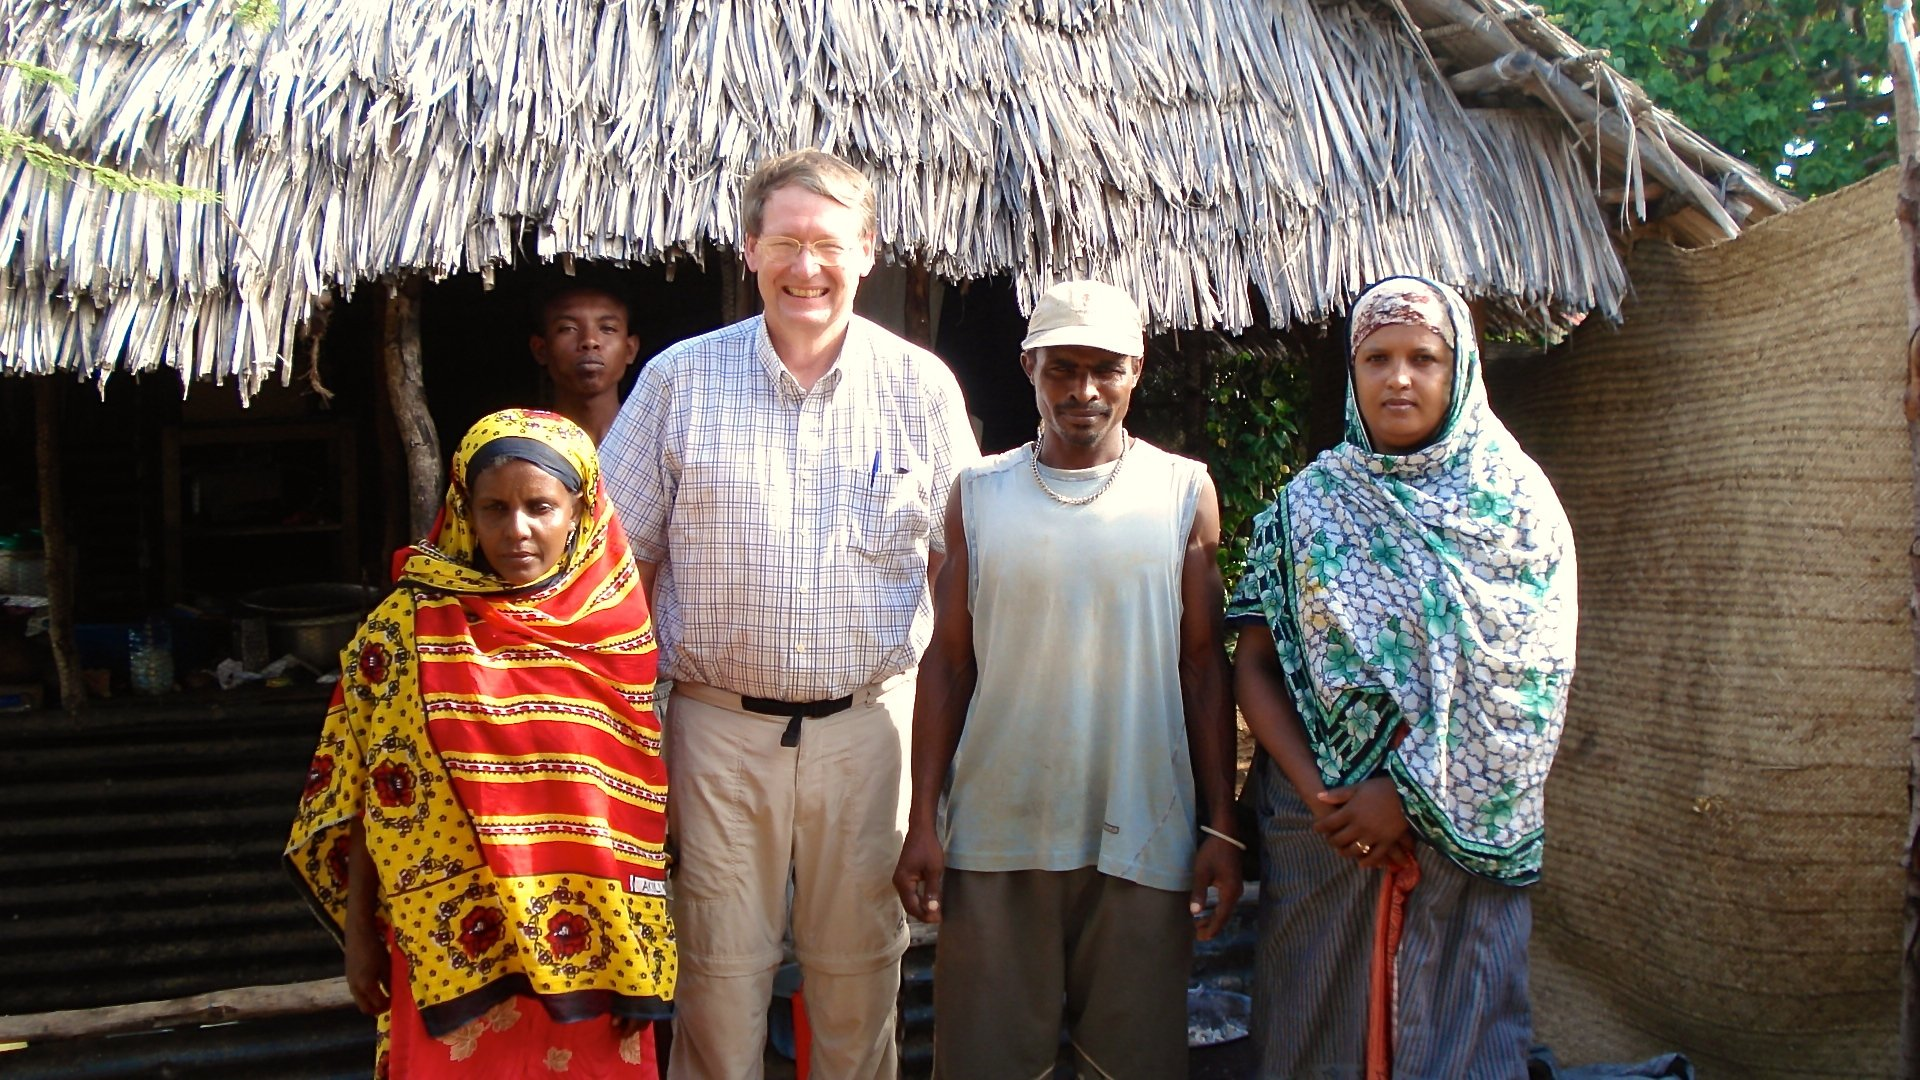 Mark on Kiwayu Island in Kenya where he was studying land tenure issues.